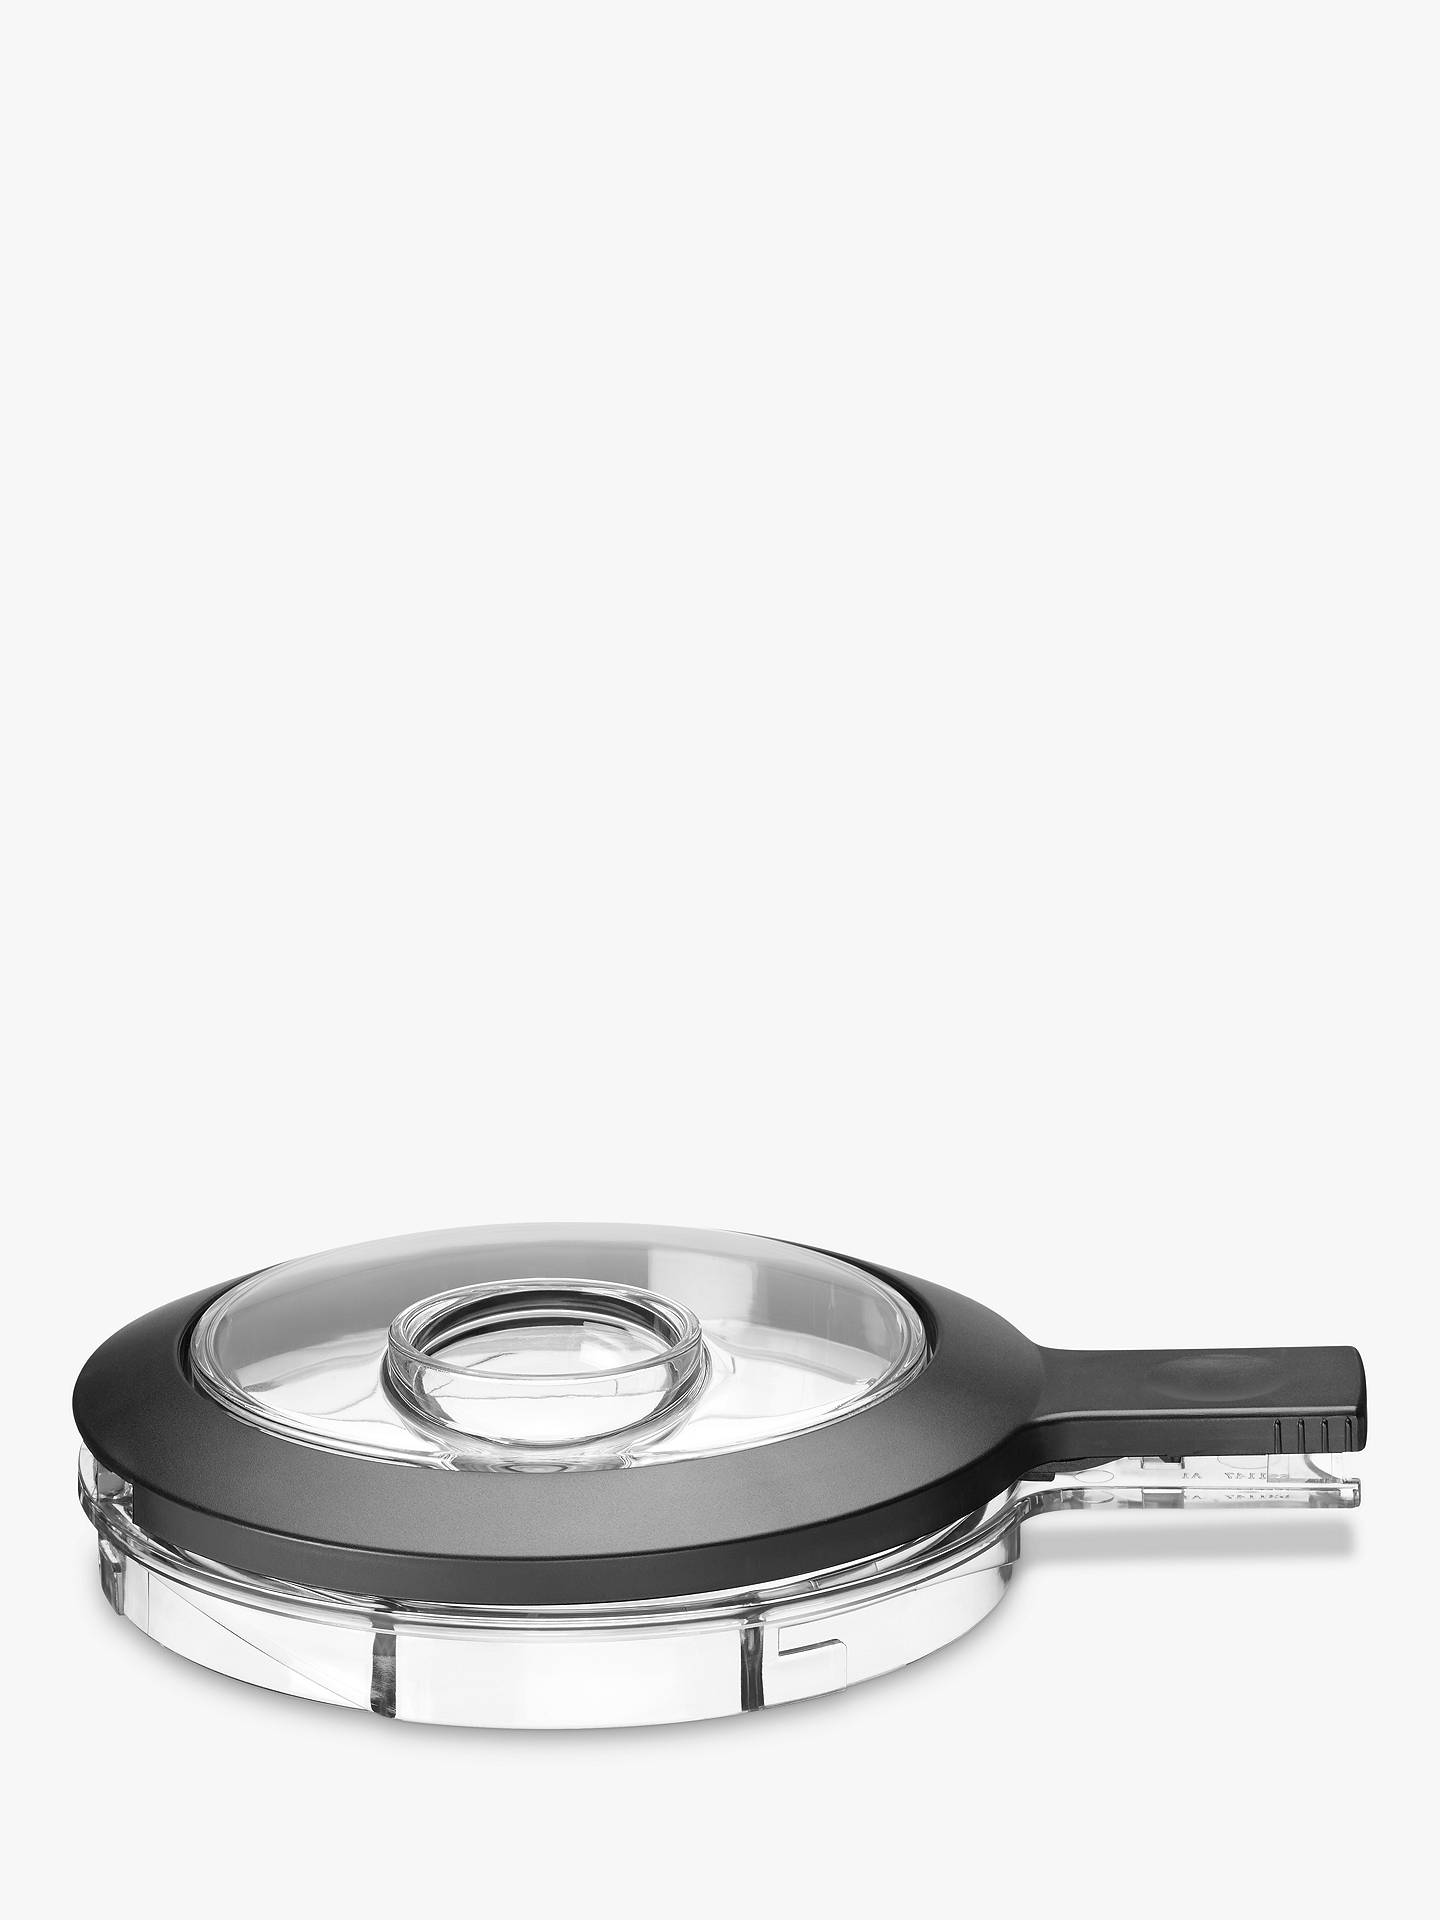 Buy KitchenAid Mini Food Processor, Almond Cream Online at johnlewis.com